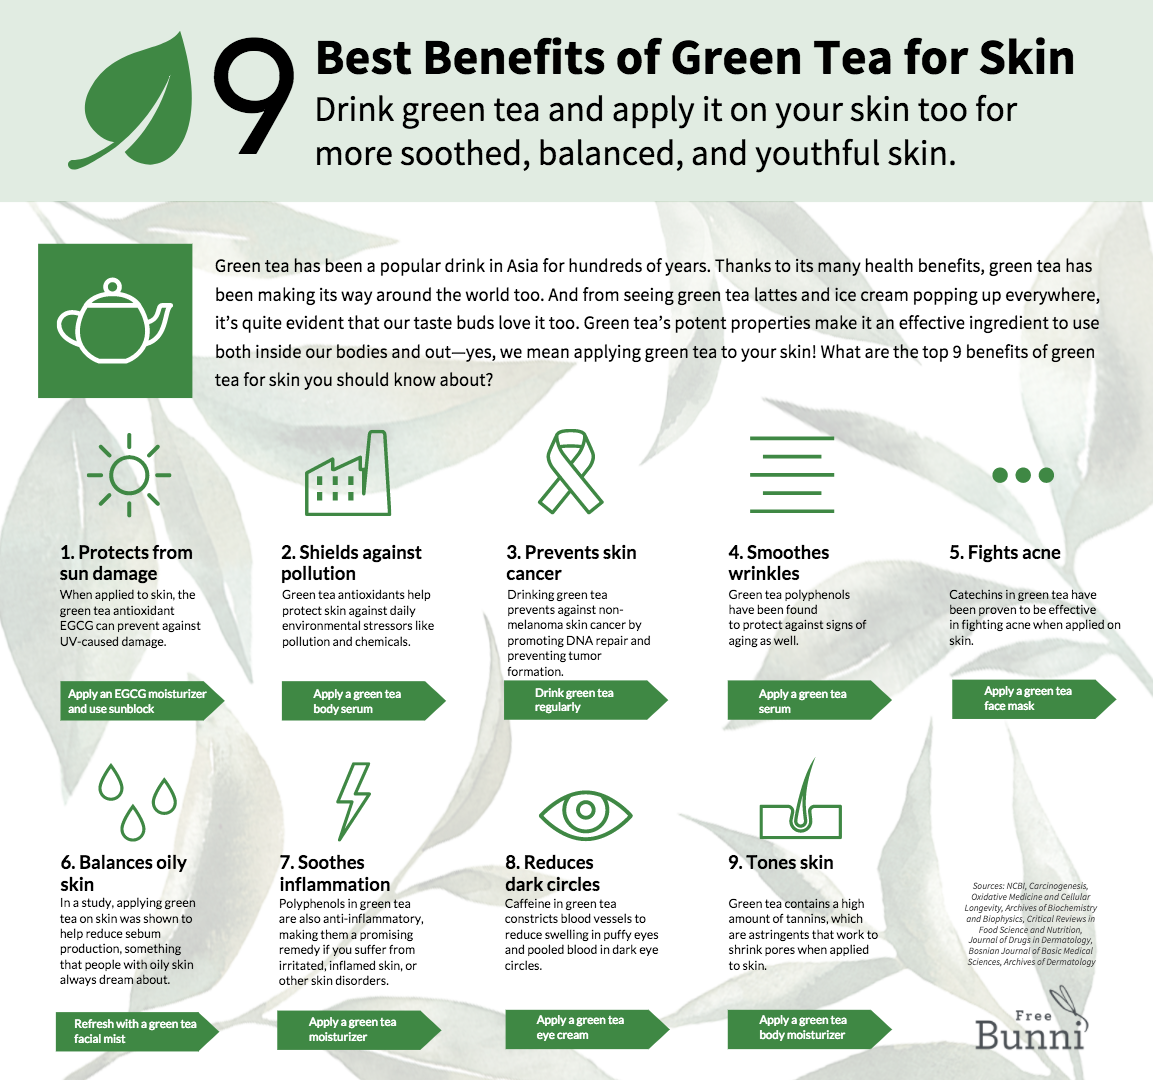 Best 9 Benefits of Green Tea for Skin Free Bunni Infographic